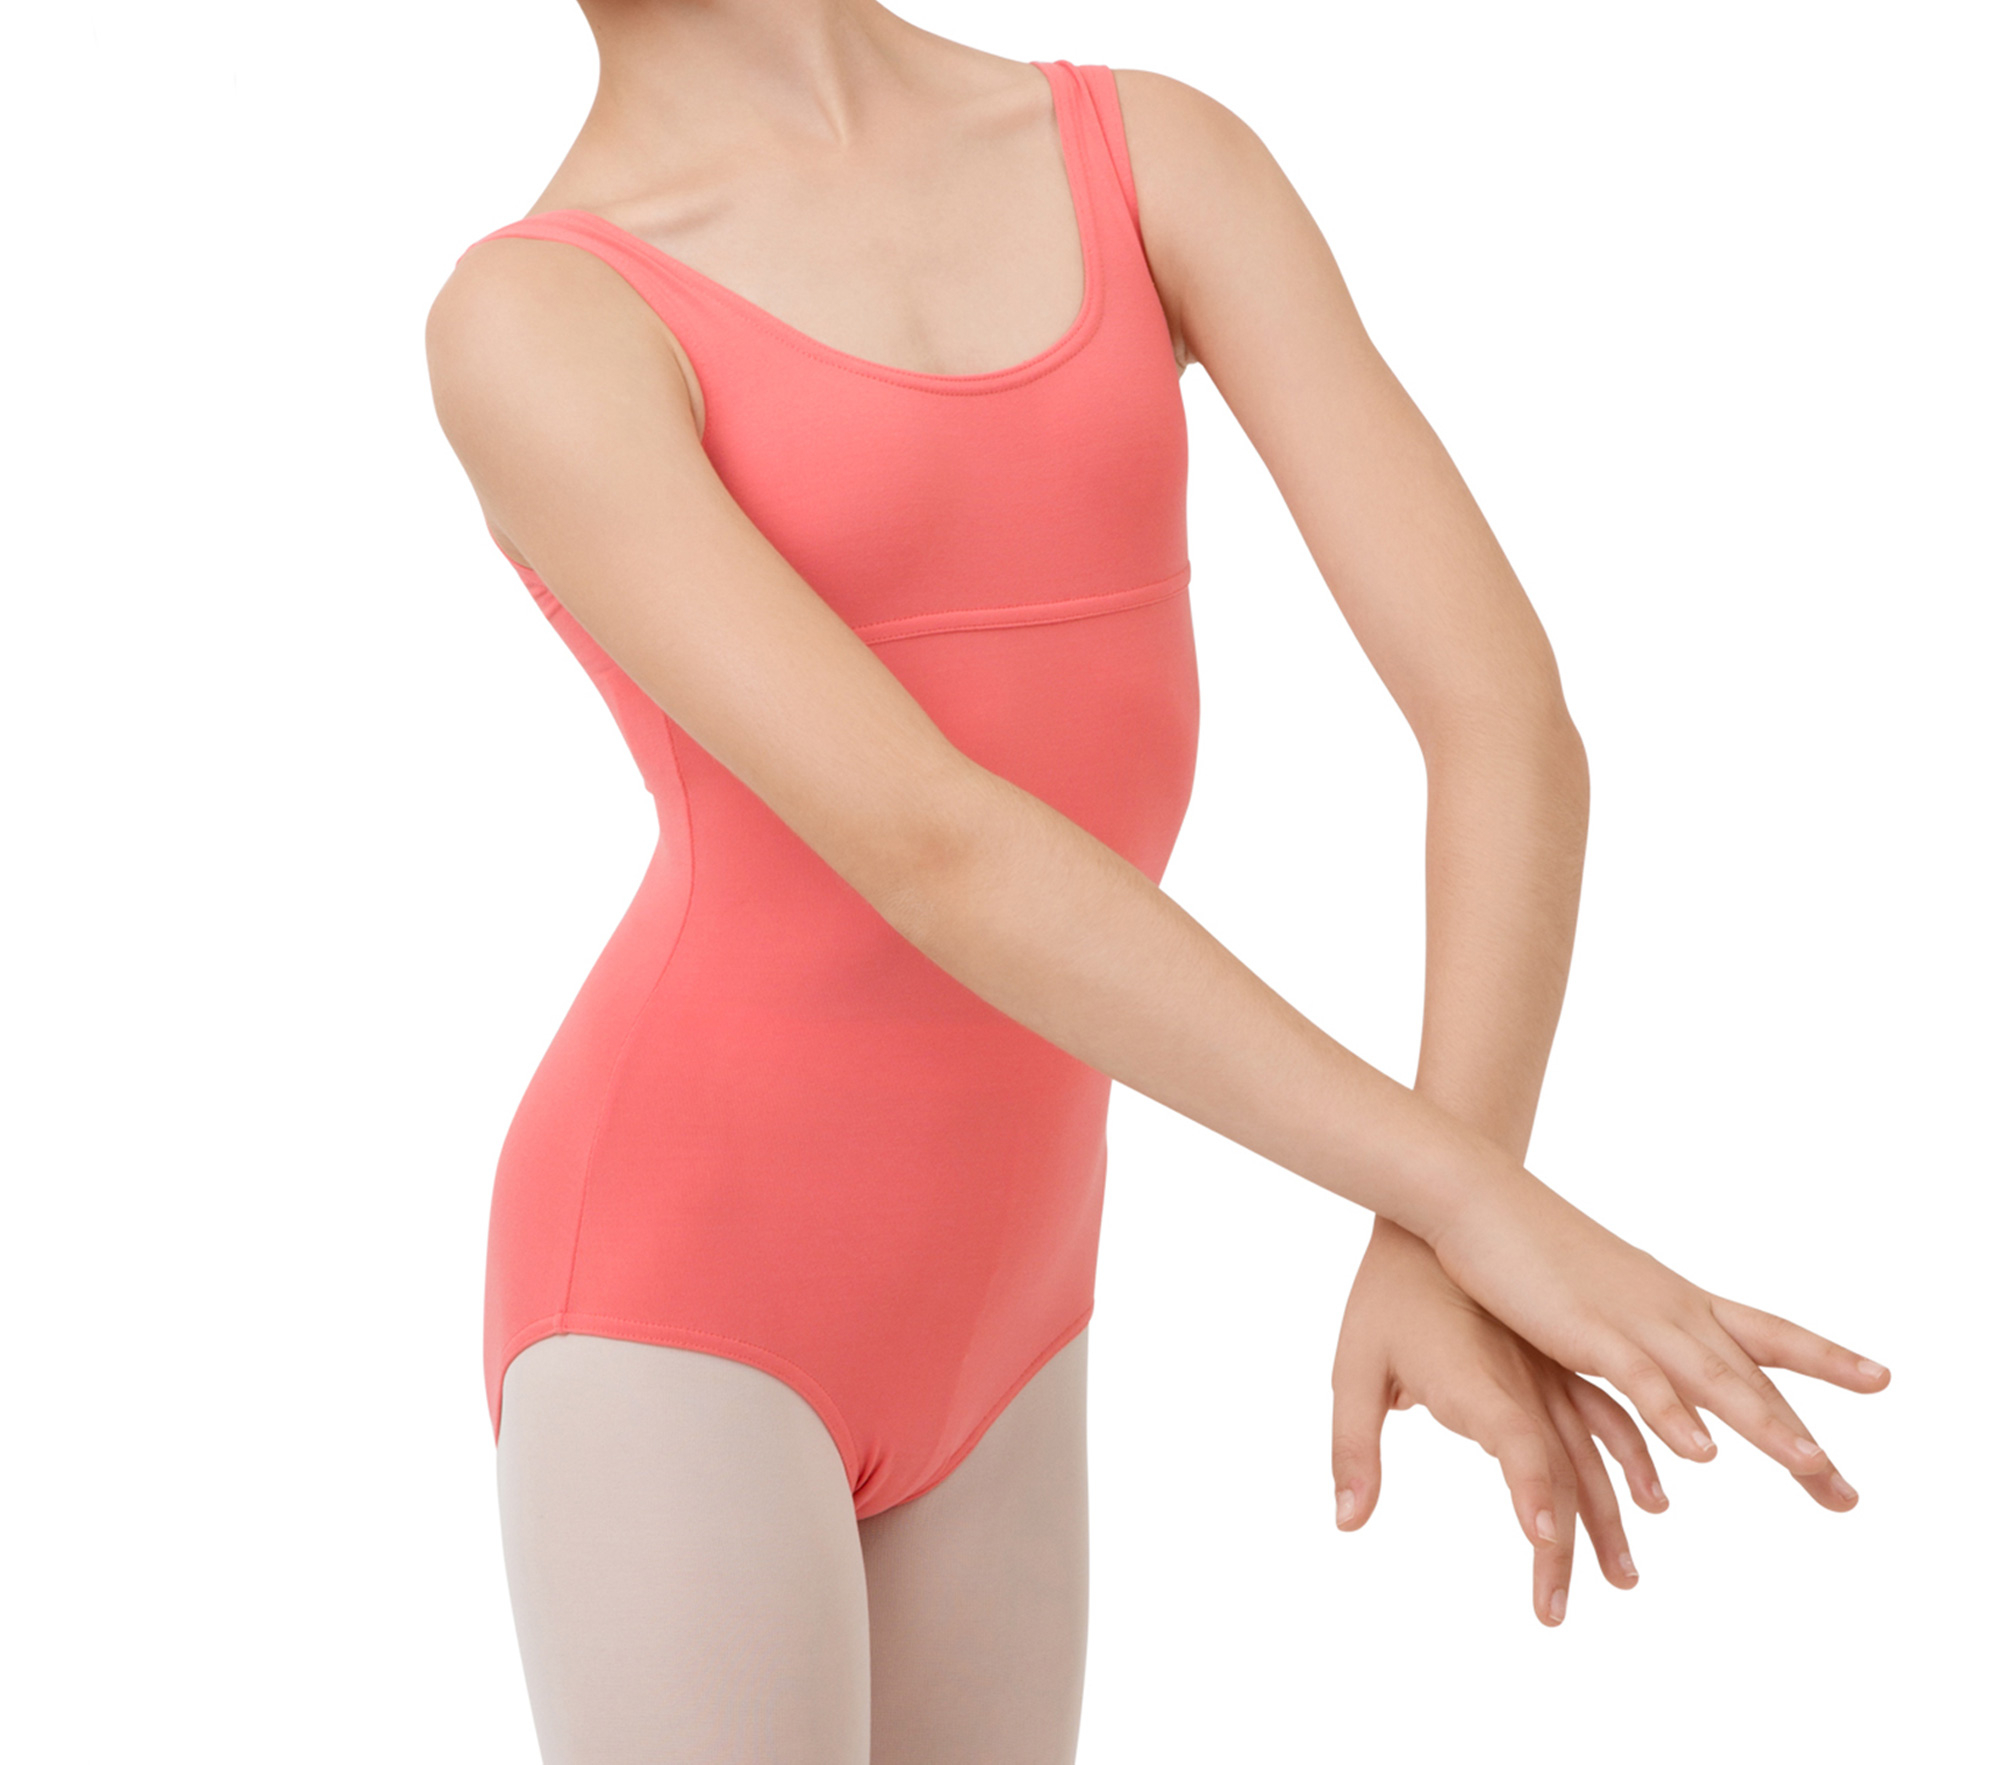 Large straps leotard